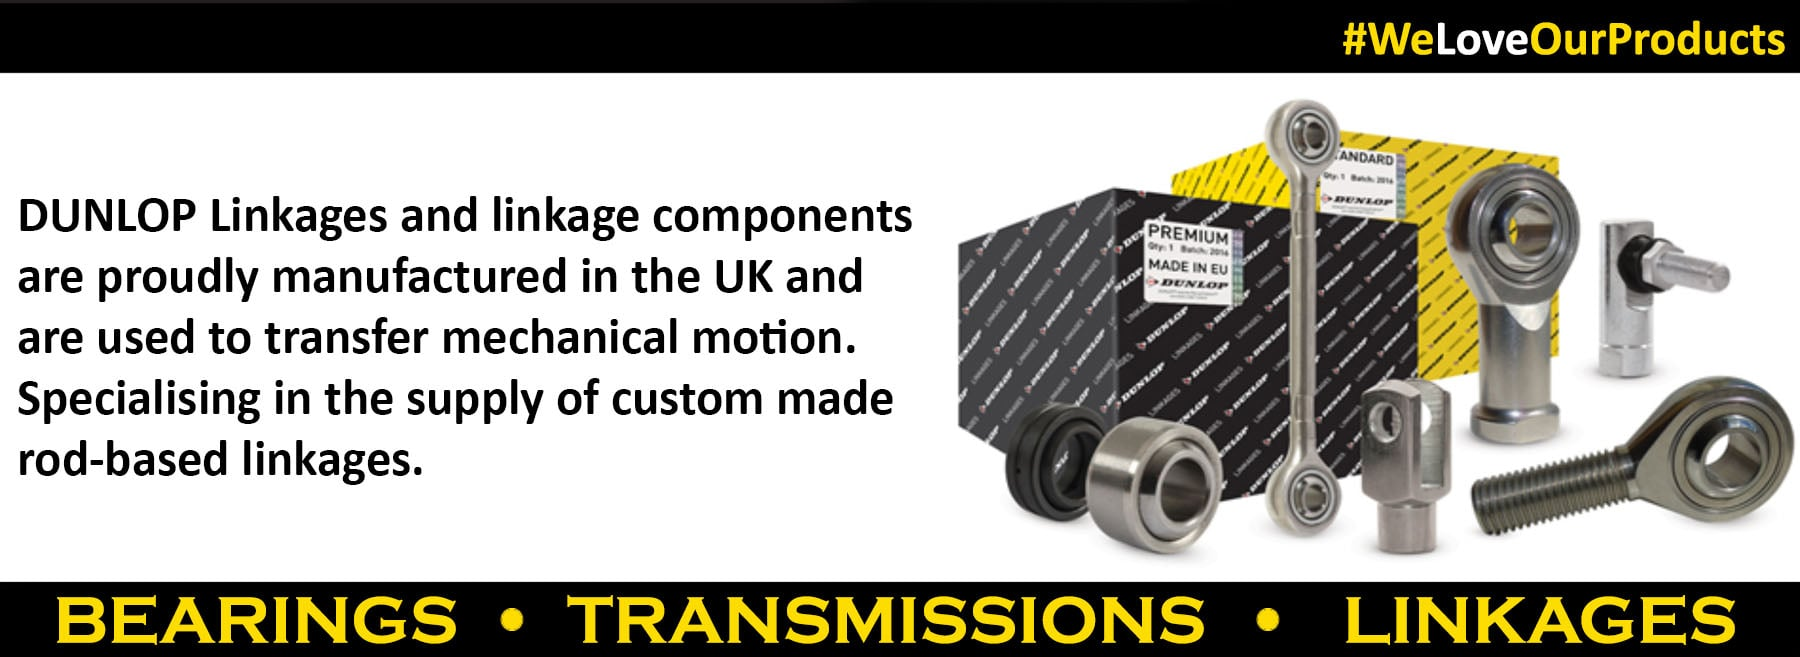 Dunlop Bearings, Transmission and Linkages